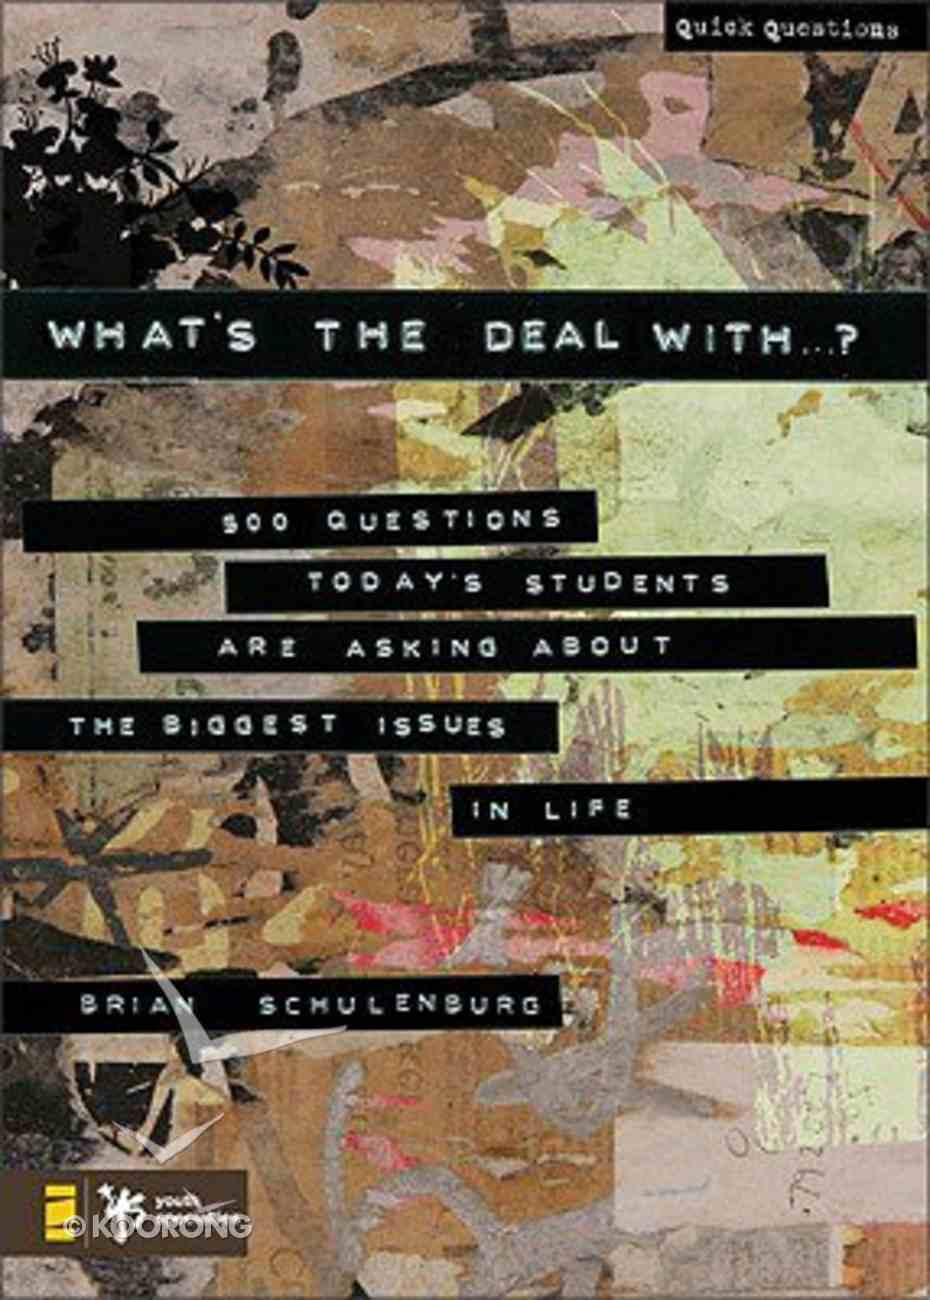 What's the Deal With ... ? (Quick Questions Series) Paperback